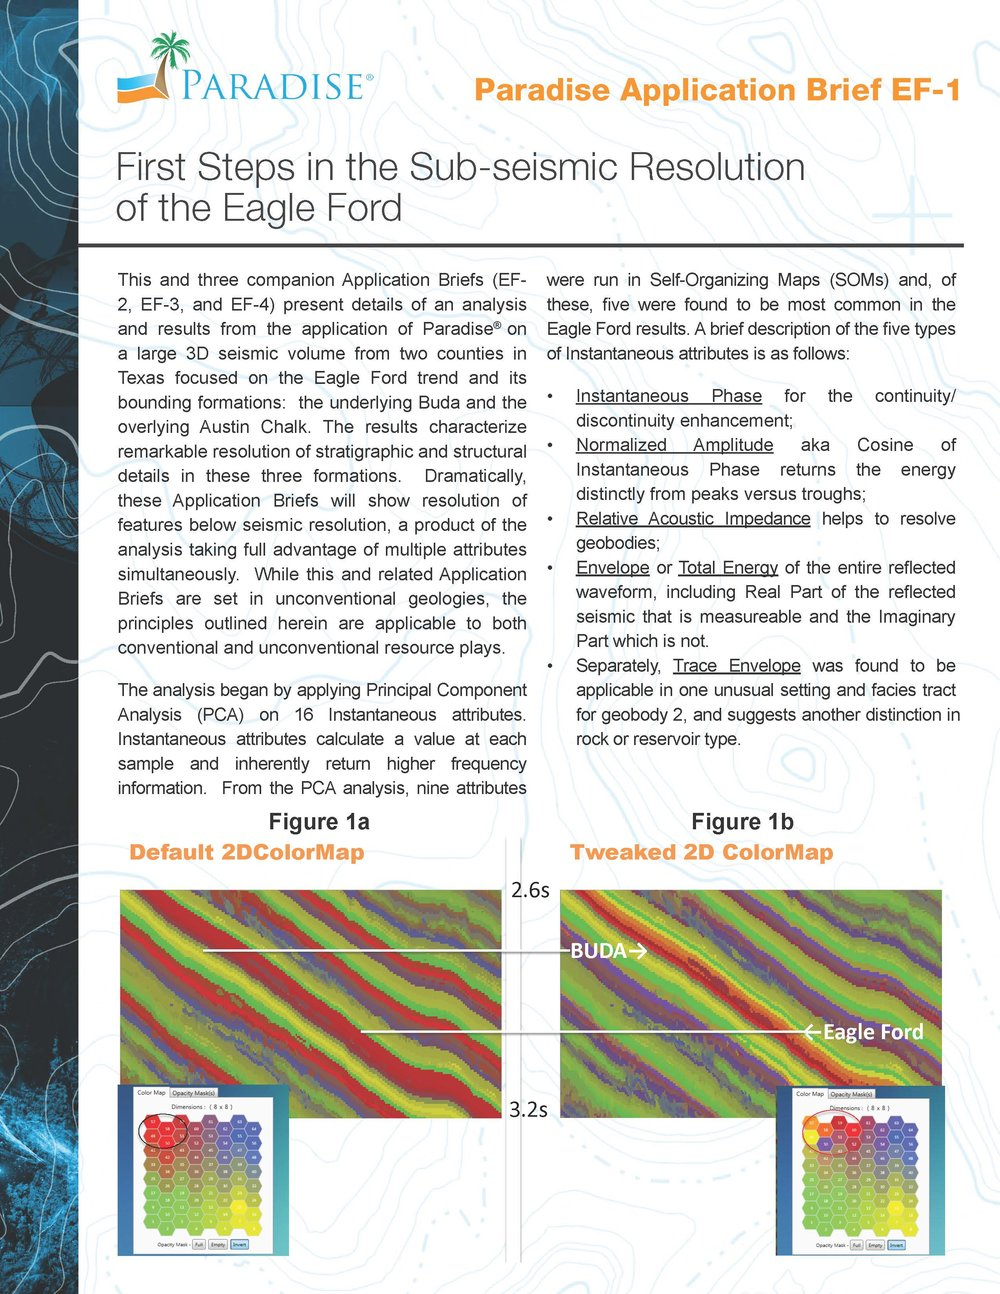 Using machine learning to analyze 5 instantaneous attributes helped reveal unique Eagle Ford facies